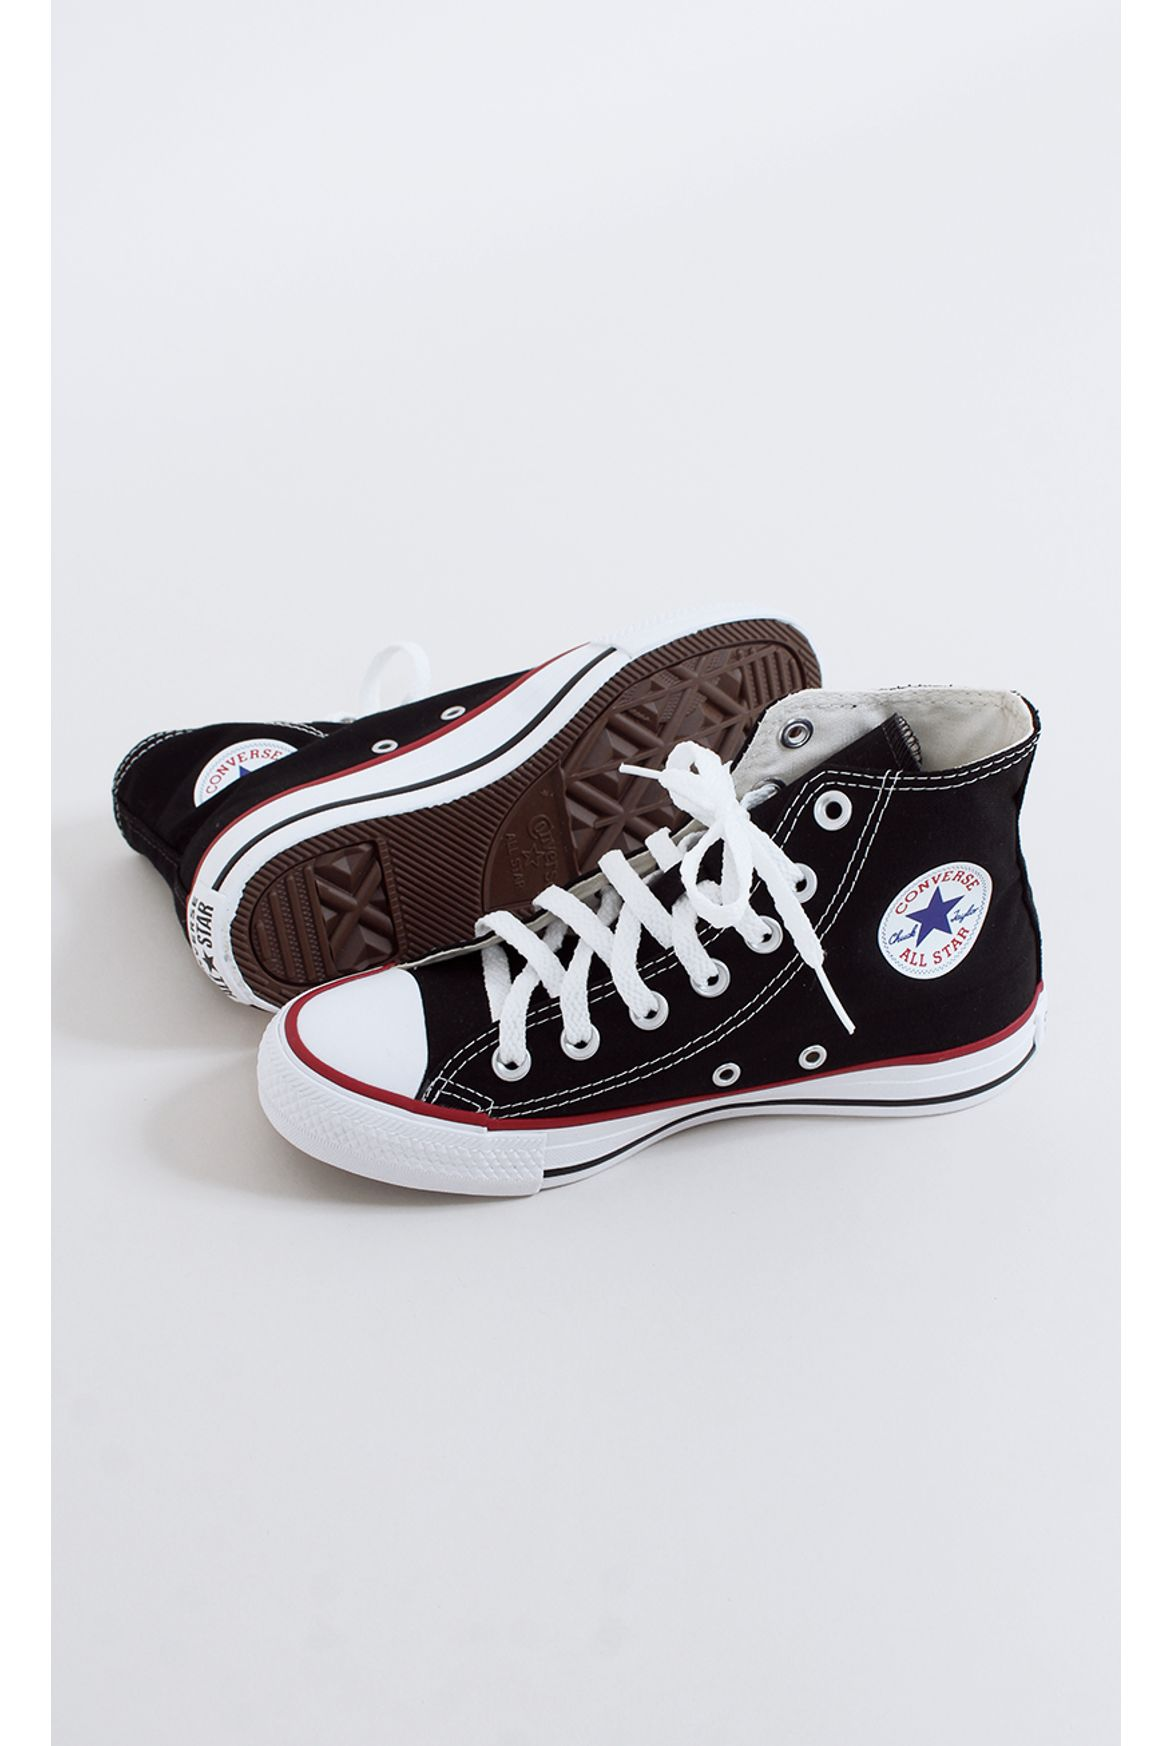 70822d5eed7 FSHN tênis all star chuck taylor preto - Fashion Closet